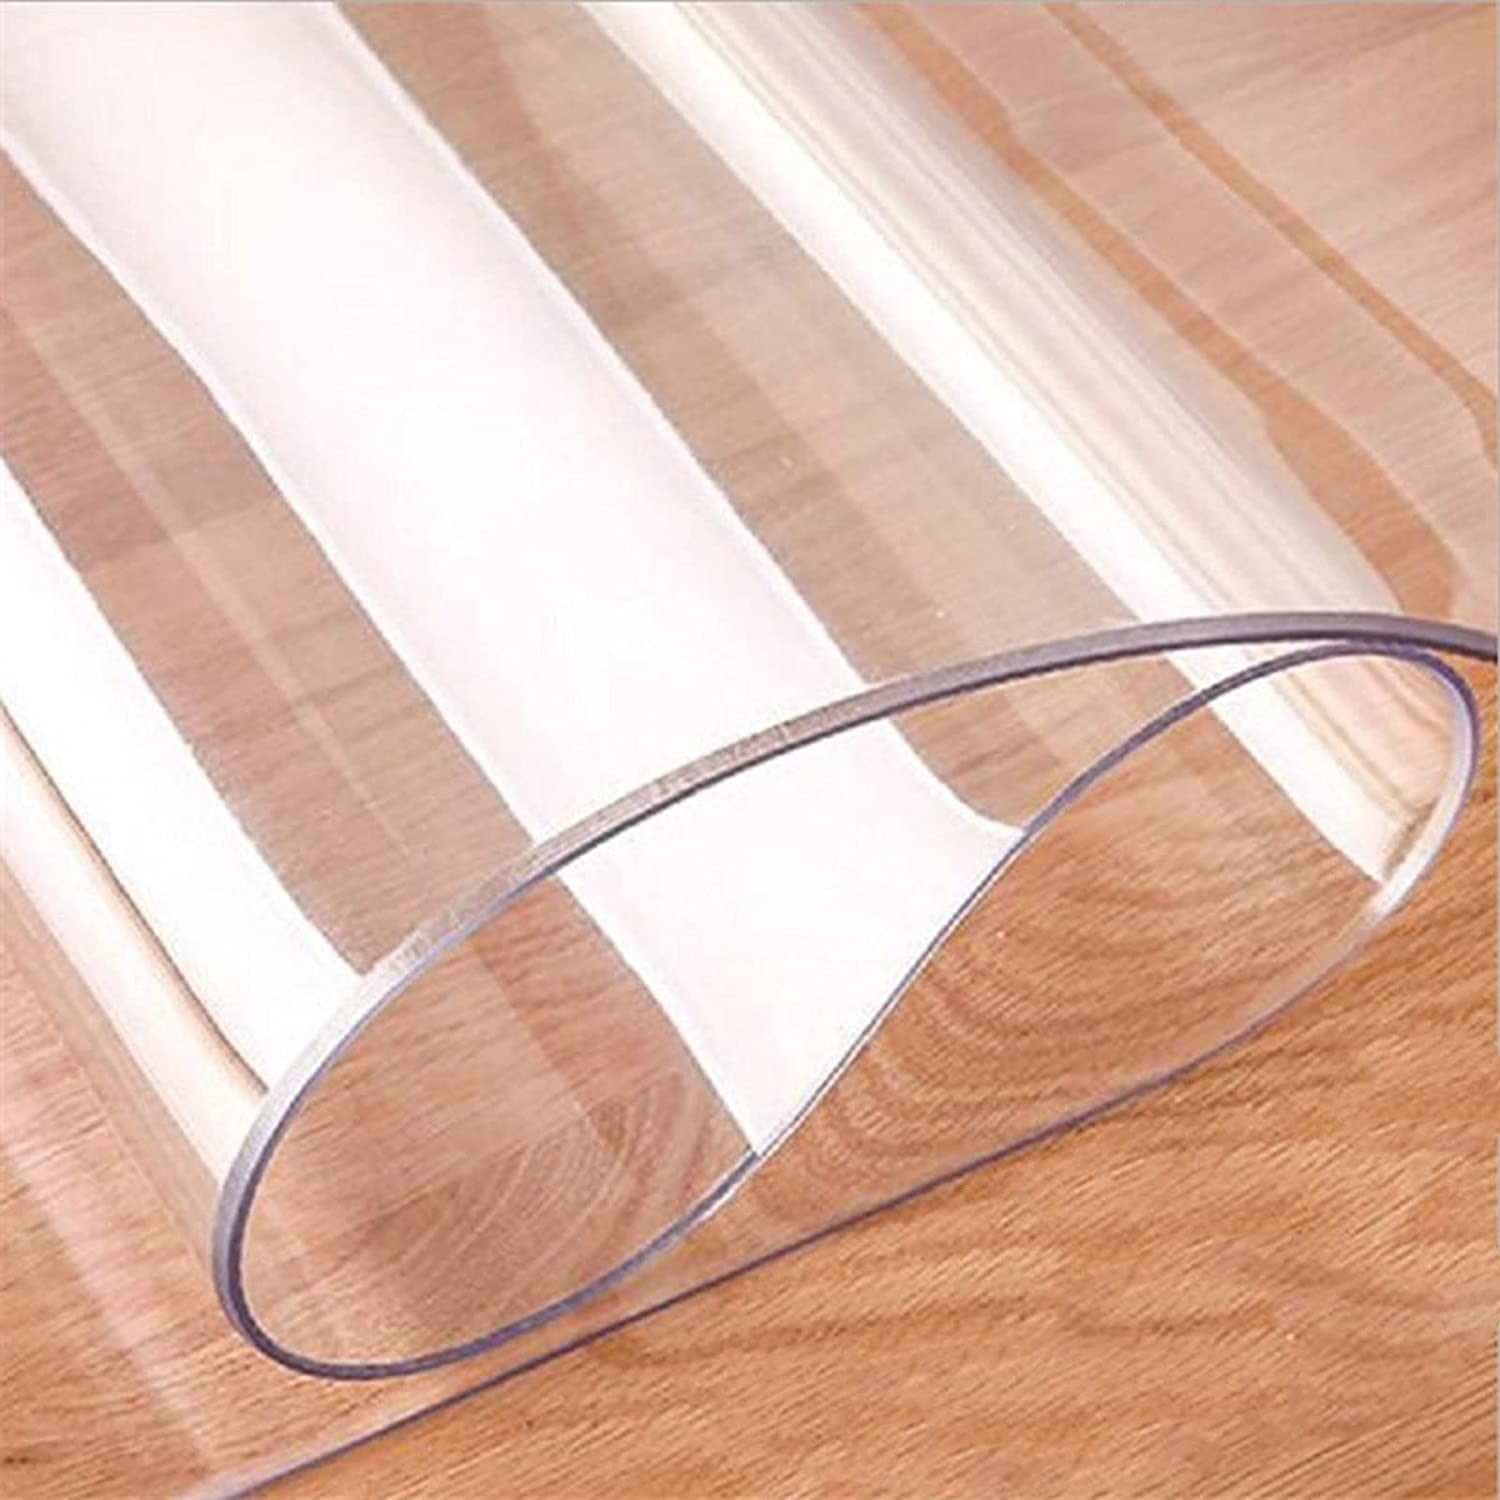 MAOYUAN Clear Challenge the lowest price of Japan Vinyl Rectangle Oi Inventory cleanup selling sale Waterproof Tablecloth Protector